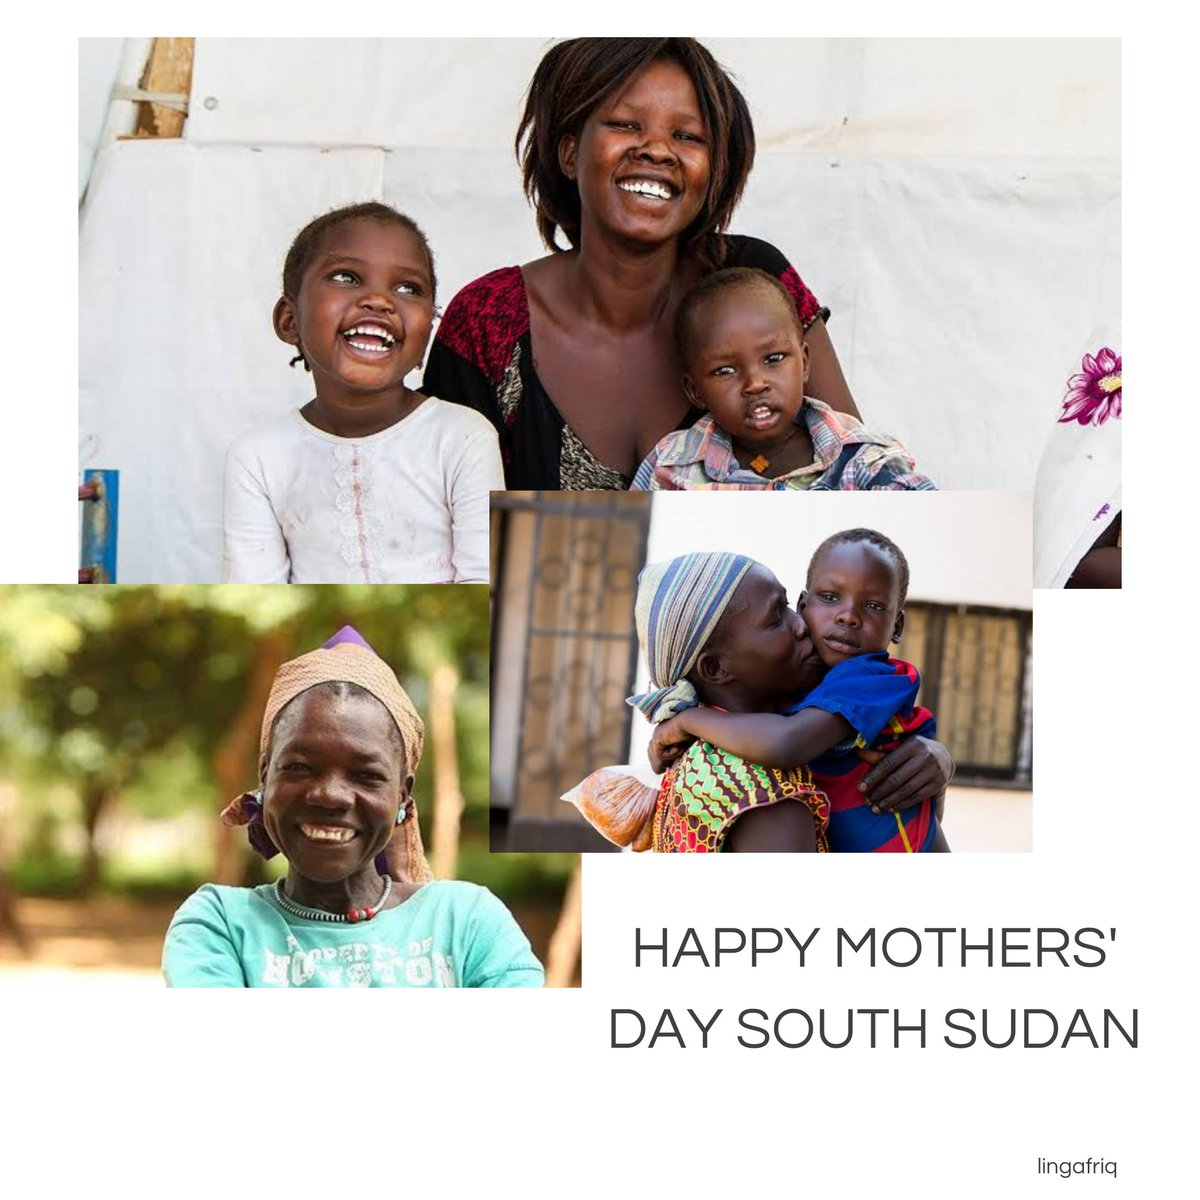 Celebrating Mothers, for laughing with us on the best days and sticking with us on the worst days❤️. Happy Mothers' Day South Sudan!🇸🇸 • • • #happymothersday #happymothersday❤️ #southsudan #southsudanese #lingafriq #africanow #africa #afriq #southsudanmothersday https://t.co/pmQ7CaAl6y